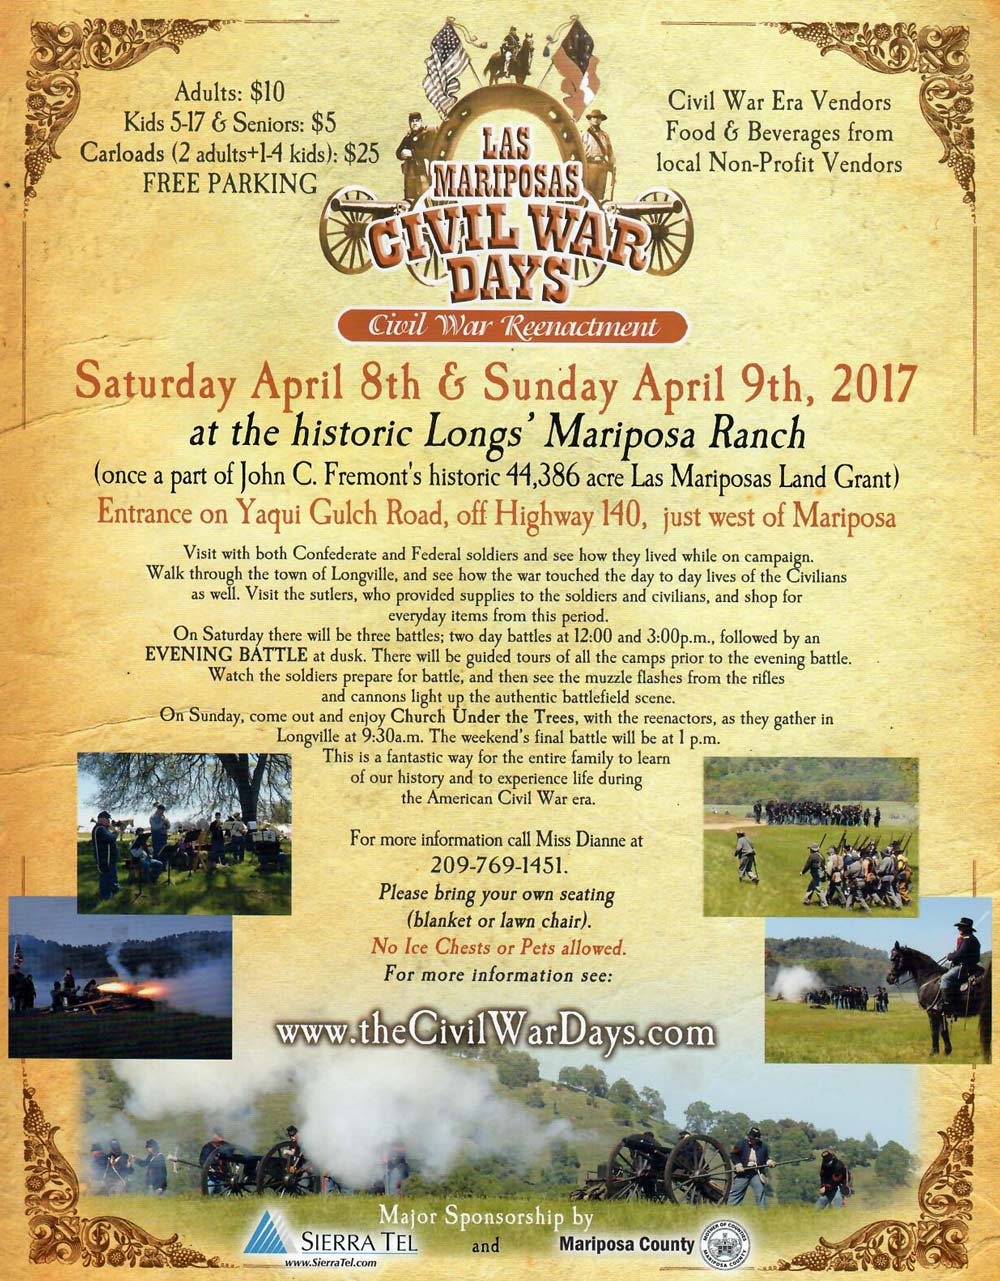 2017 Civil War Days flyer